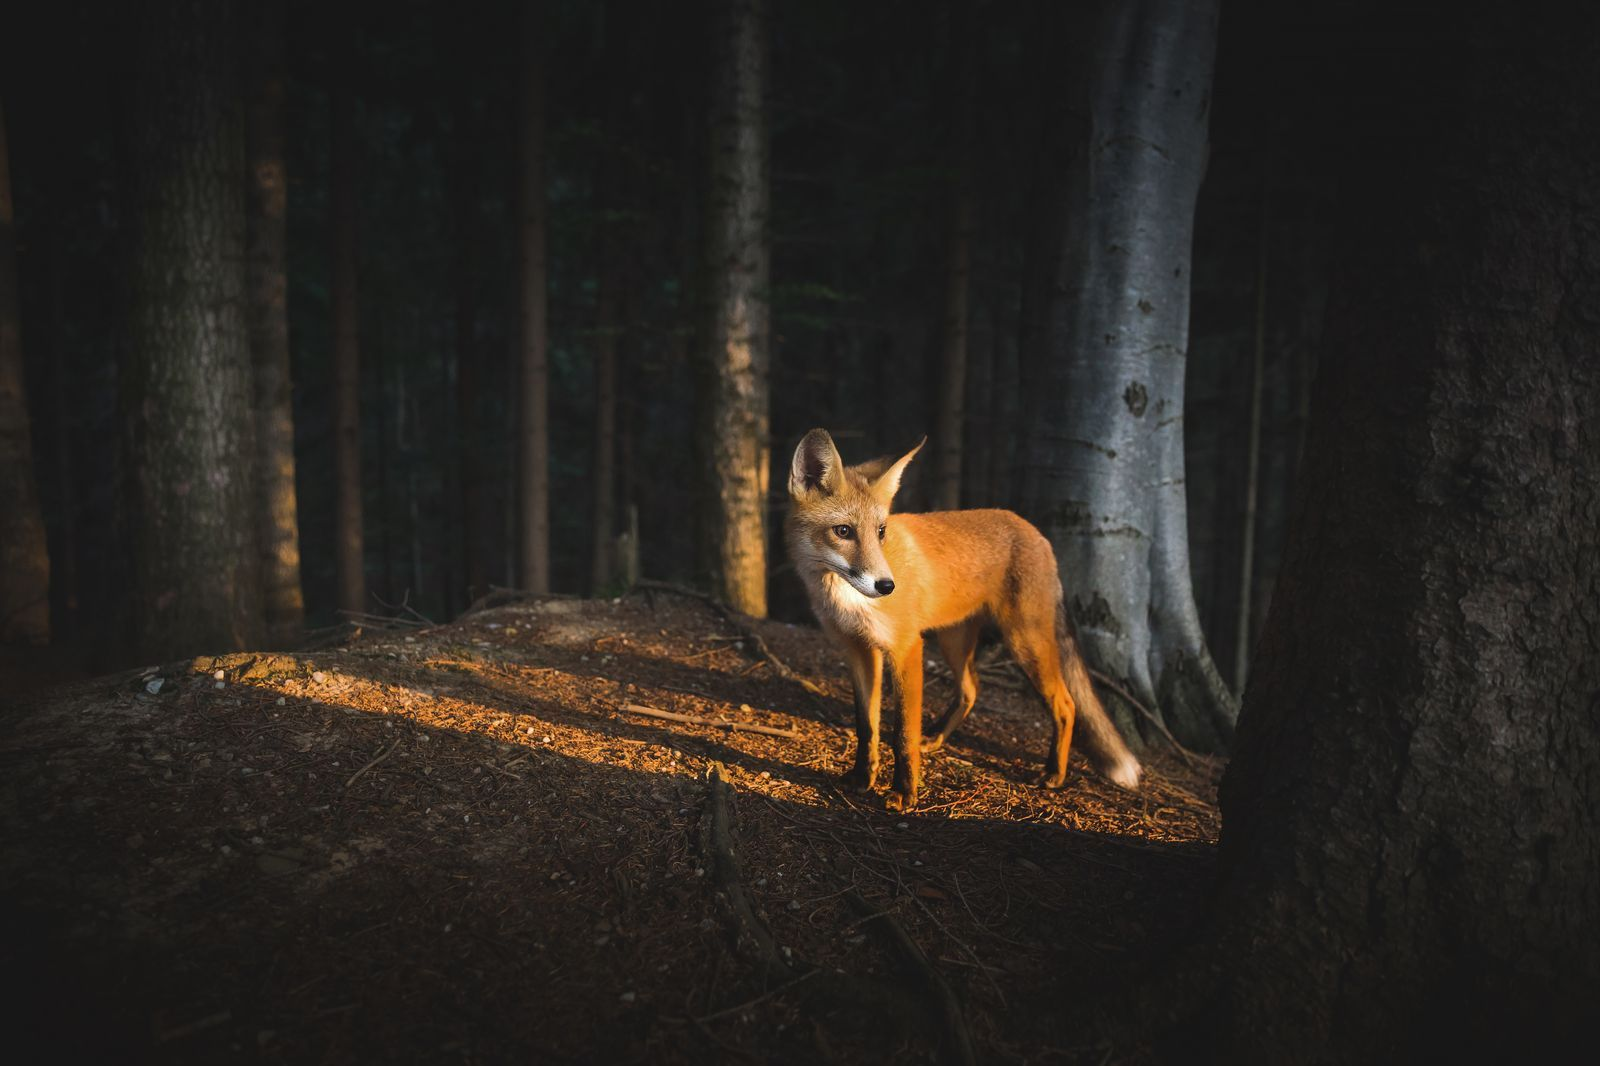 This fox in the woods.